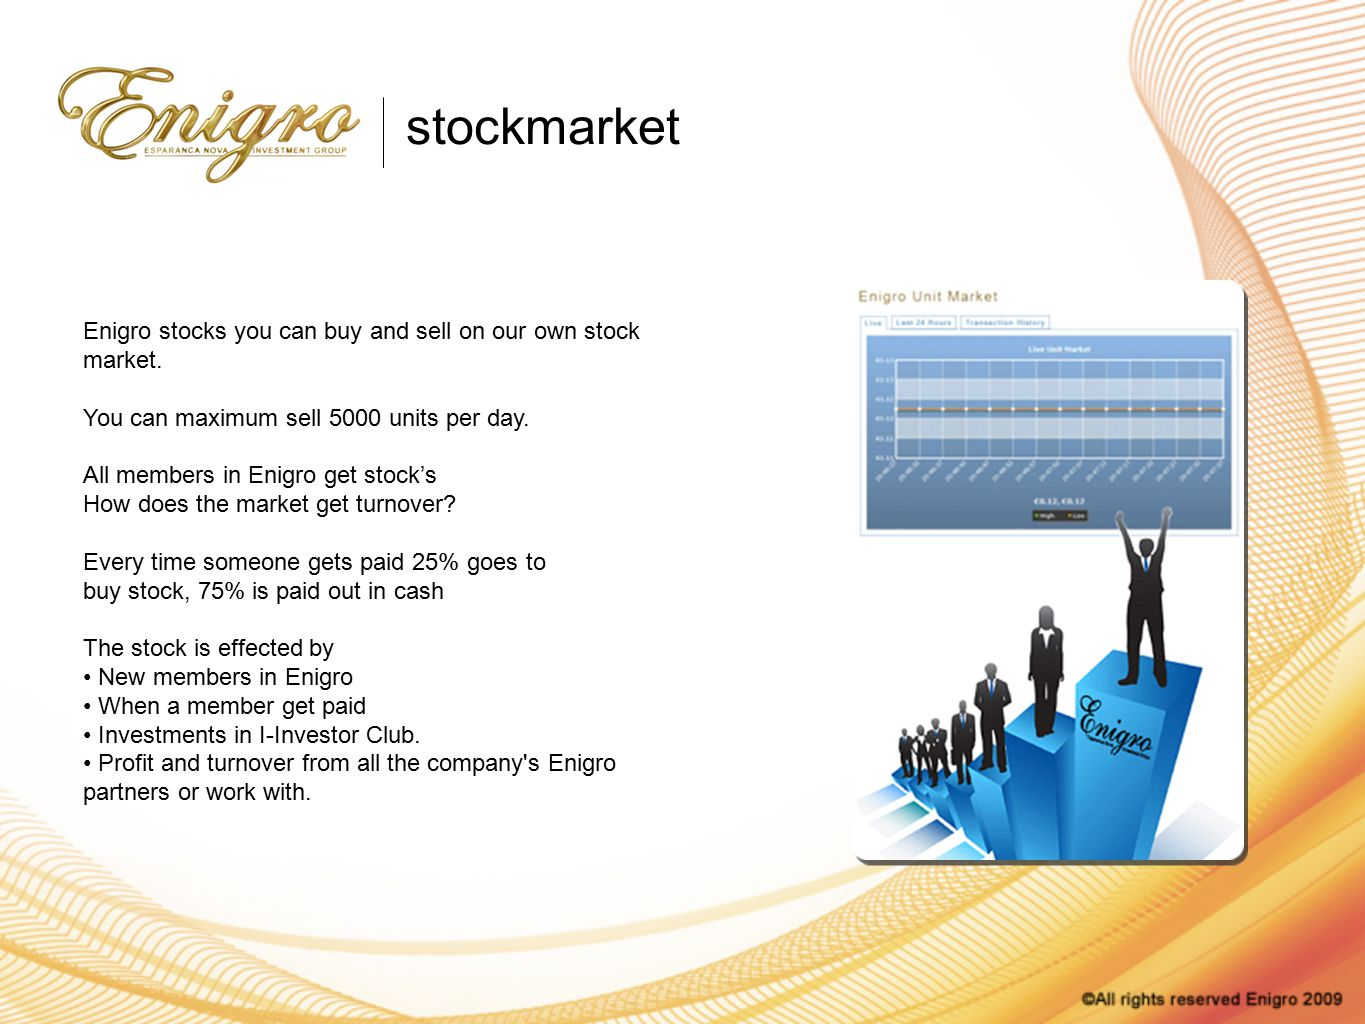 Enigro stocks you can buy and sell on our own stock market.